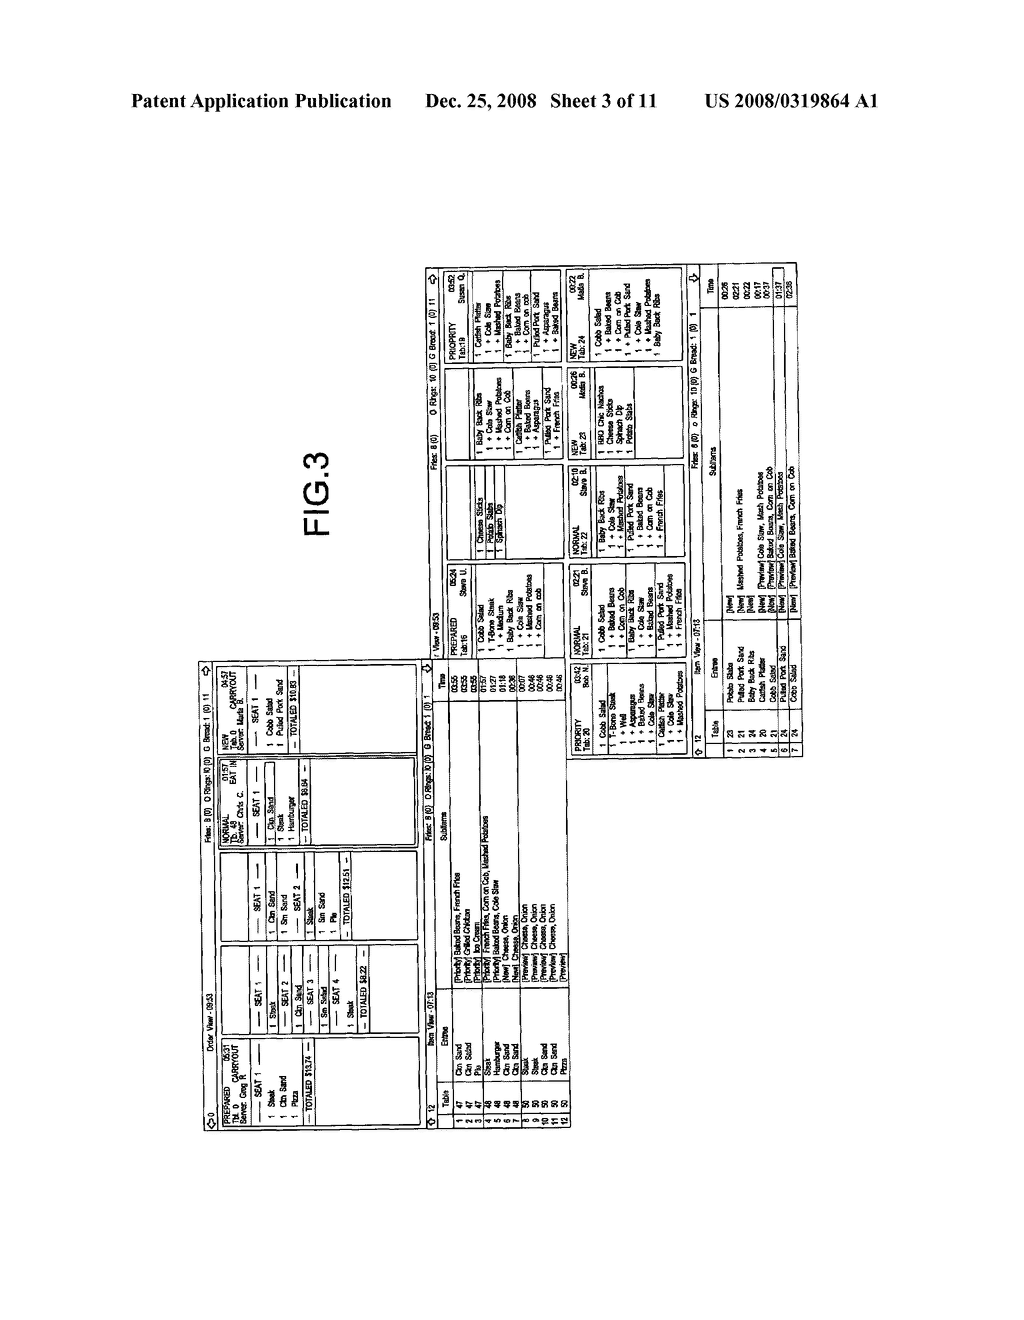 hight resolution of method of dynamically routing food items through a restaurant kitchen diagram schematic and image 04